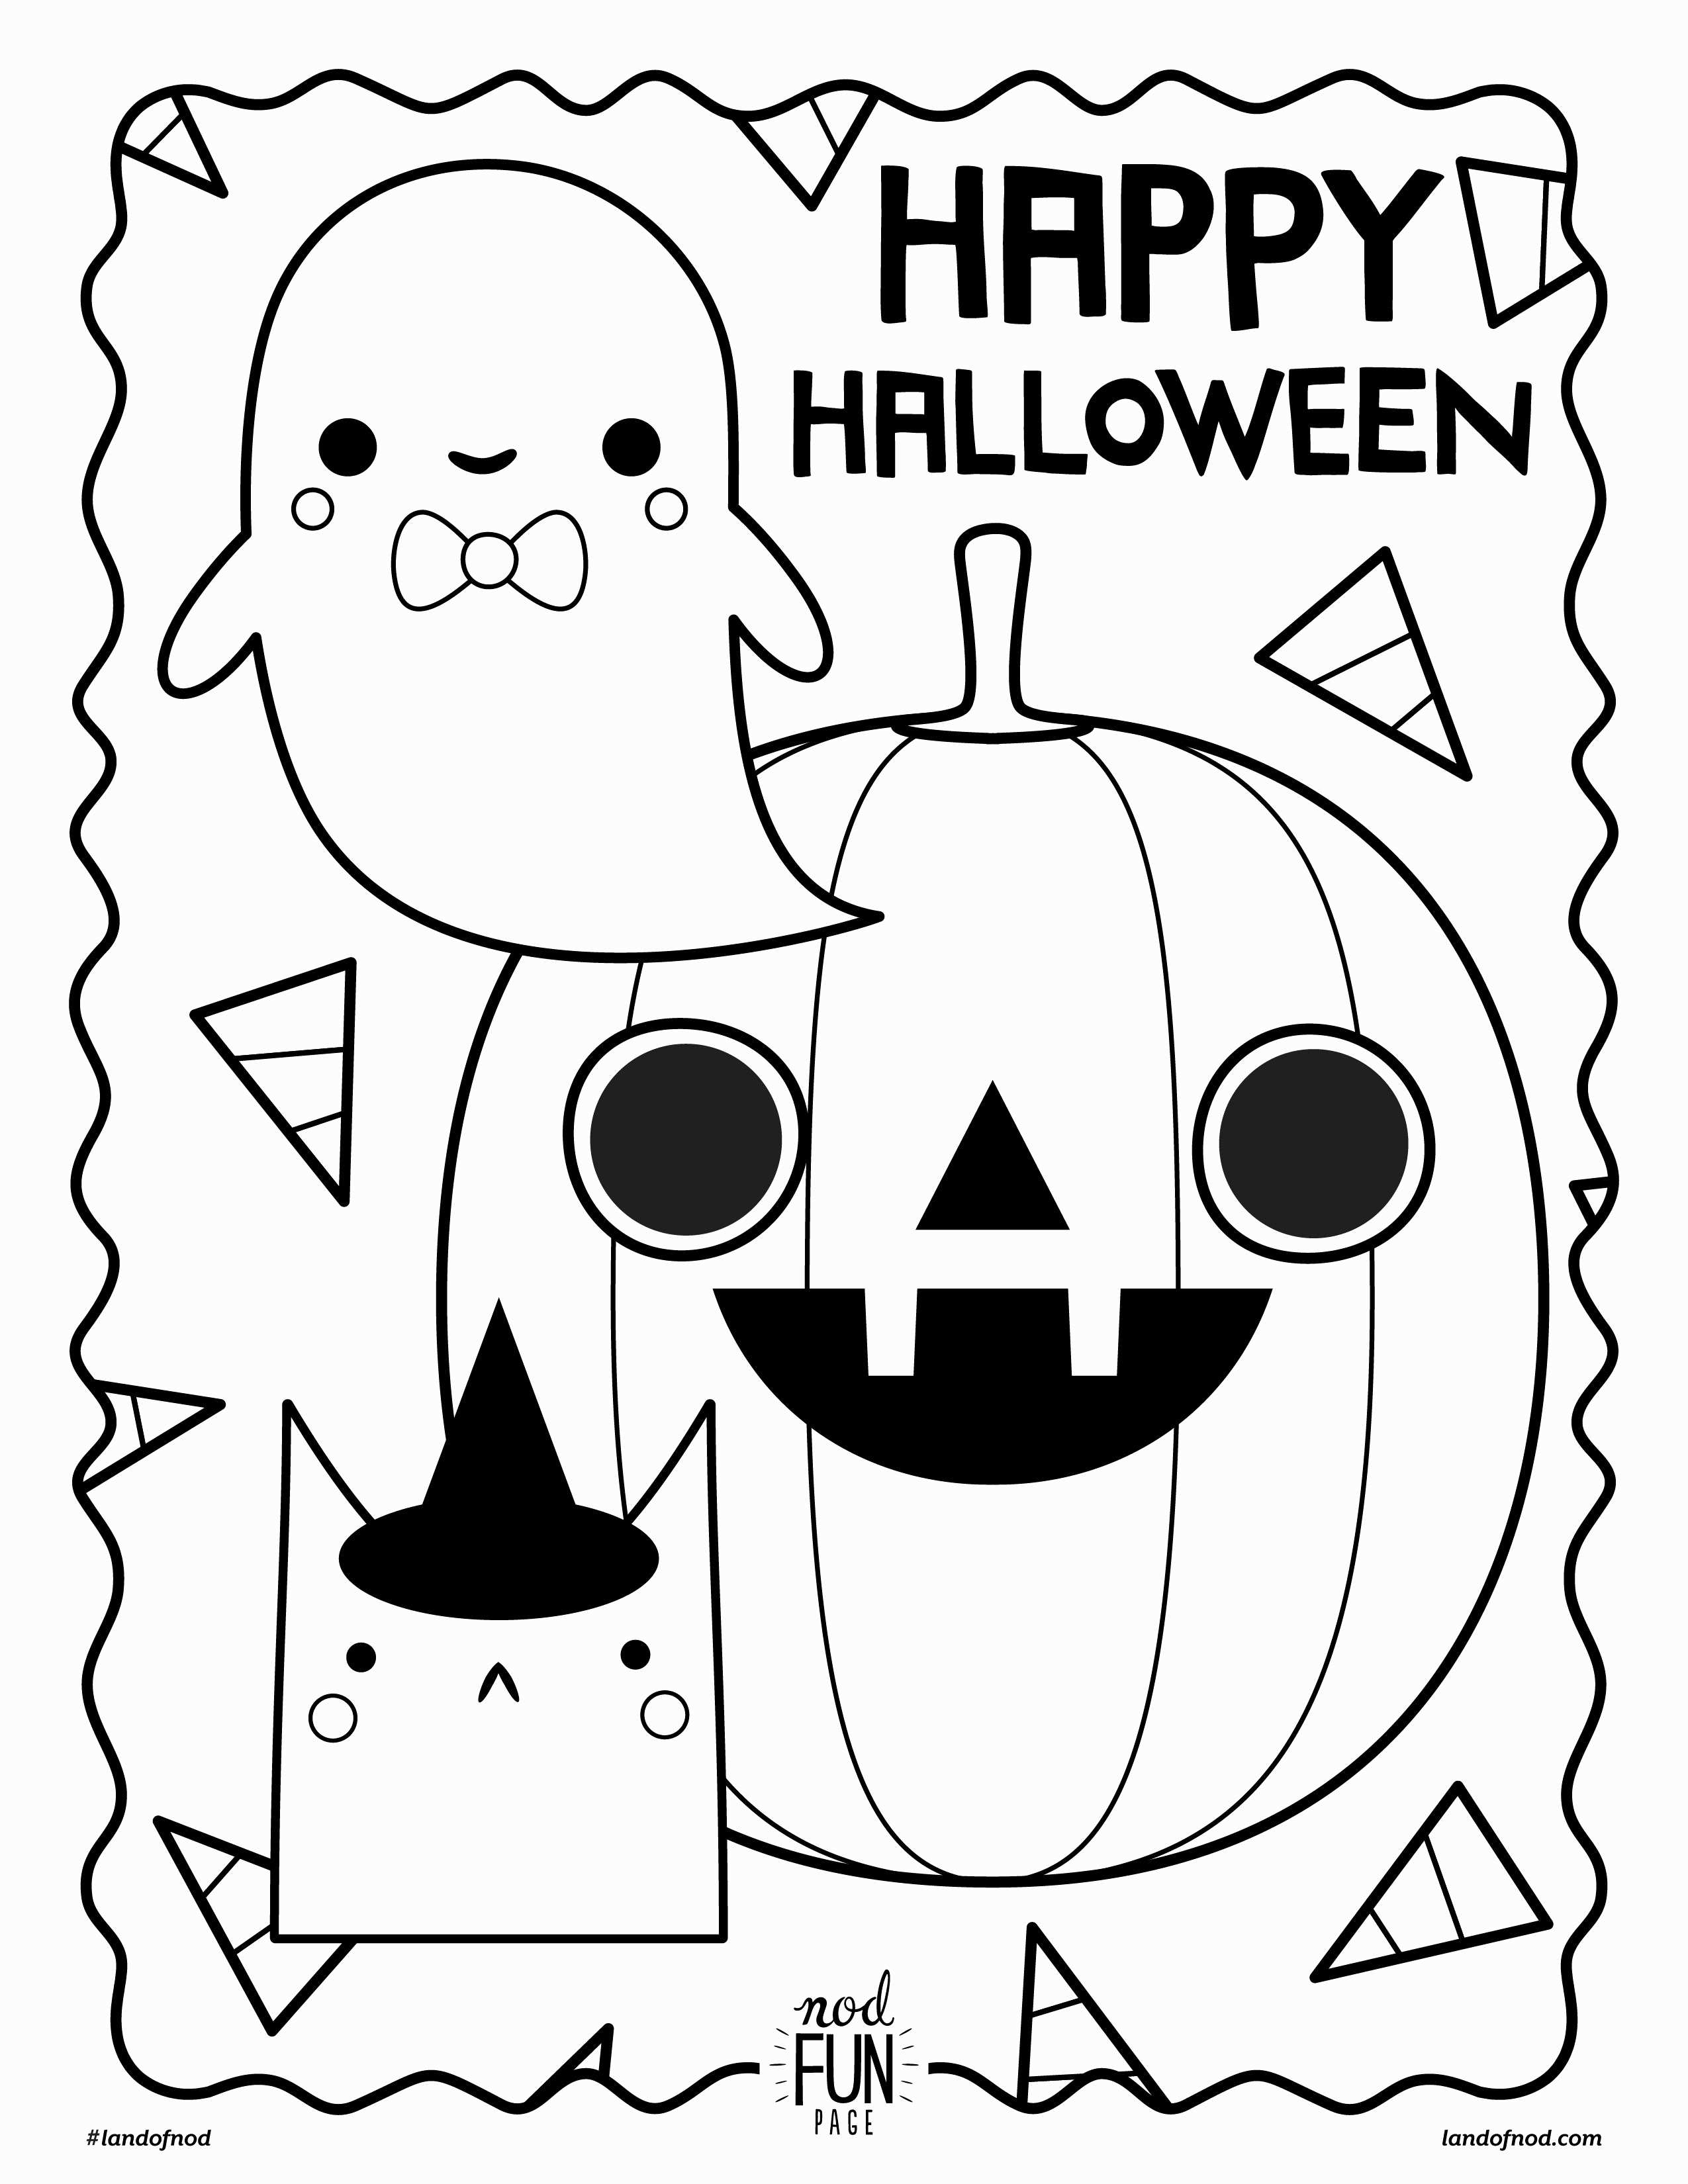 coloring halloween printables halloween coloring pages download free coloring sheets halloween printables coloring